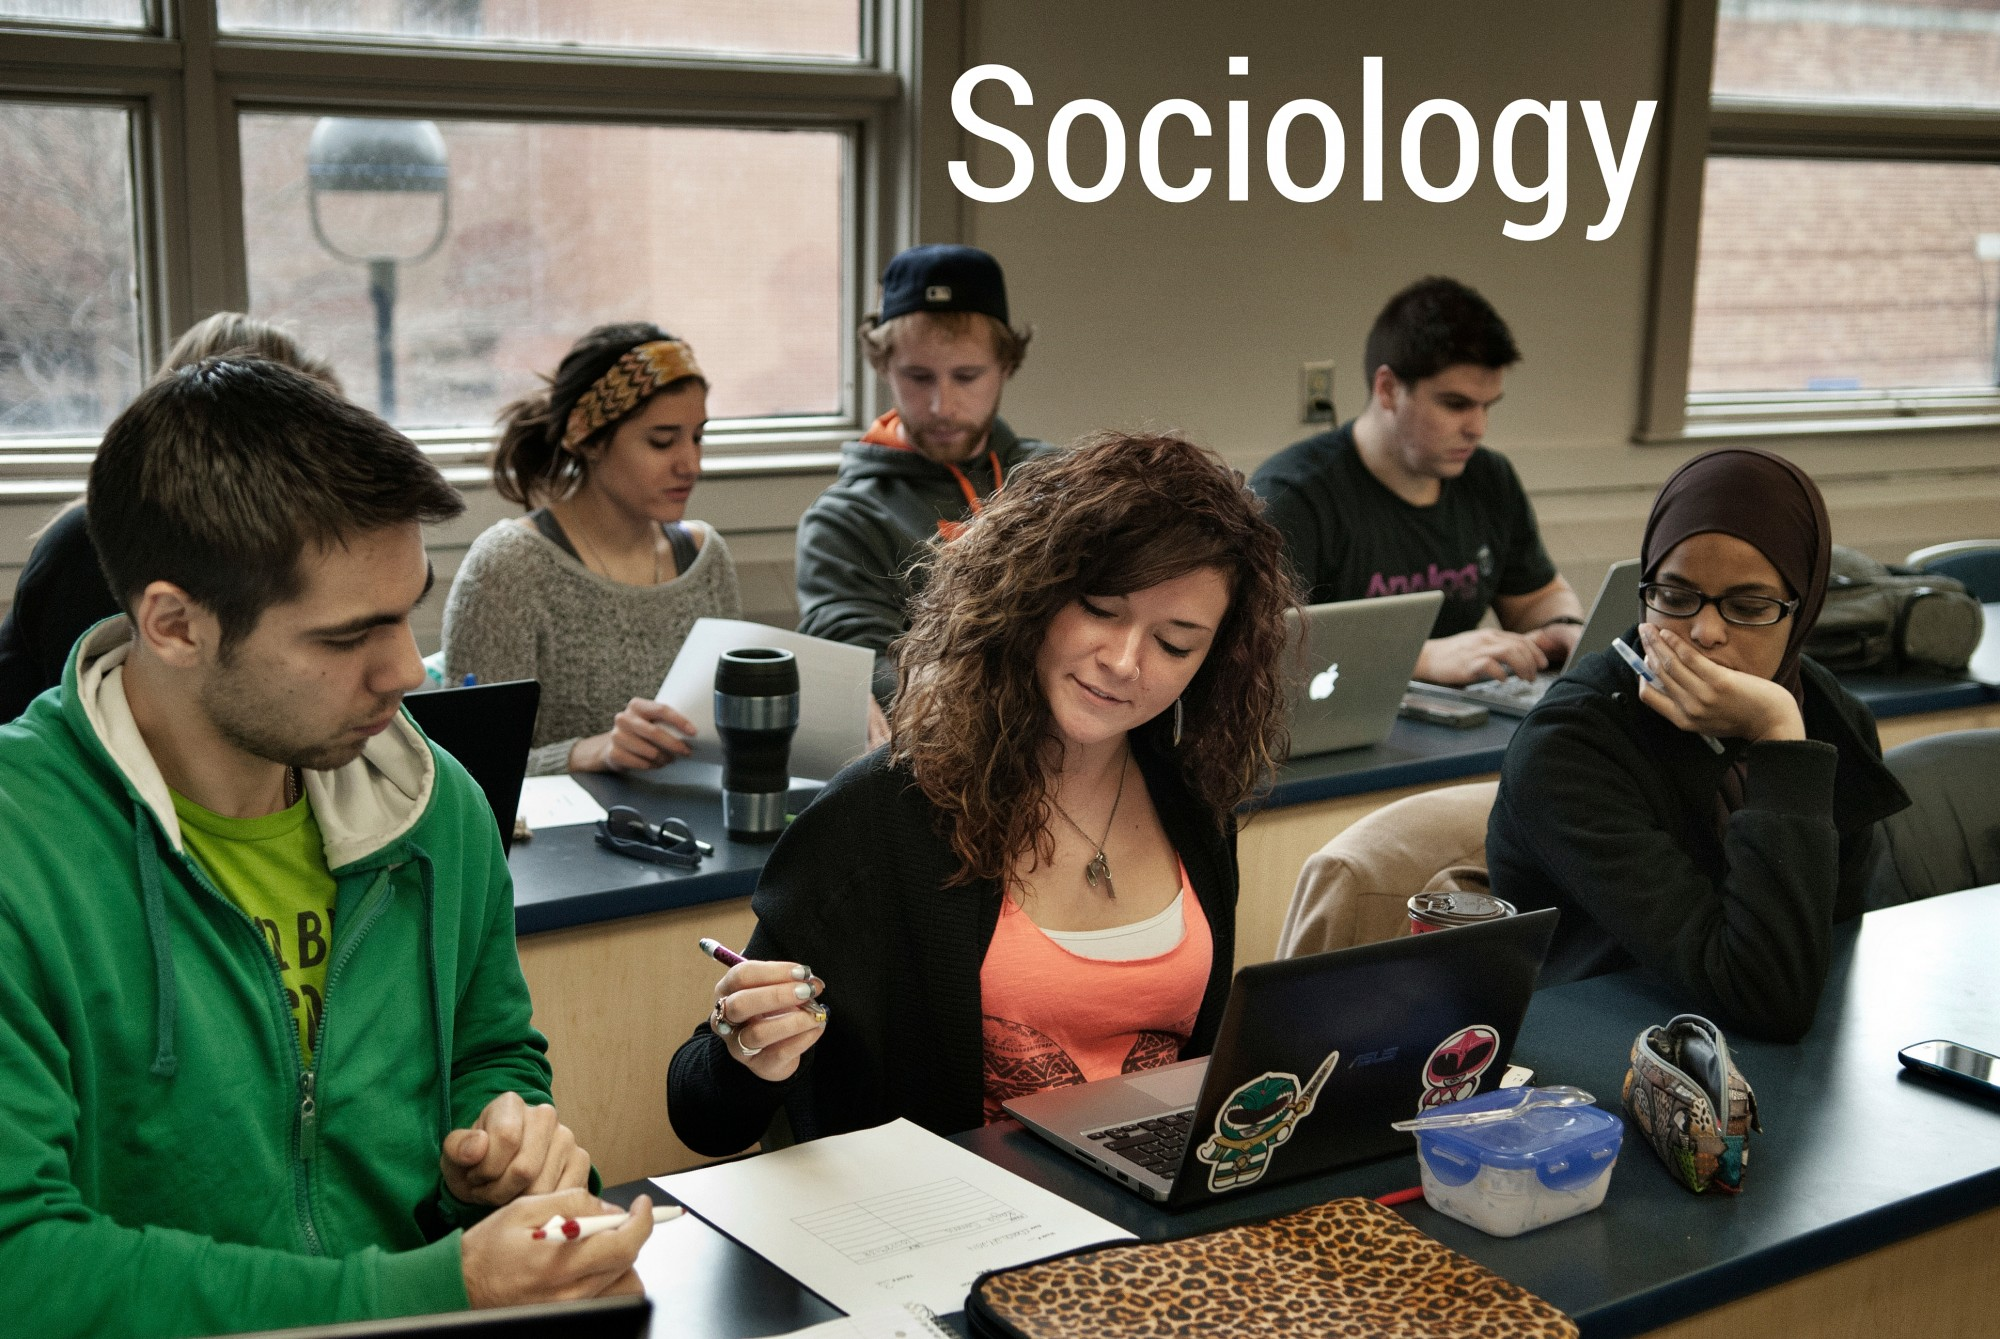 Sociology students in a classroom with Sociology text super-imposed